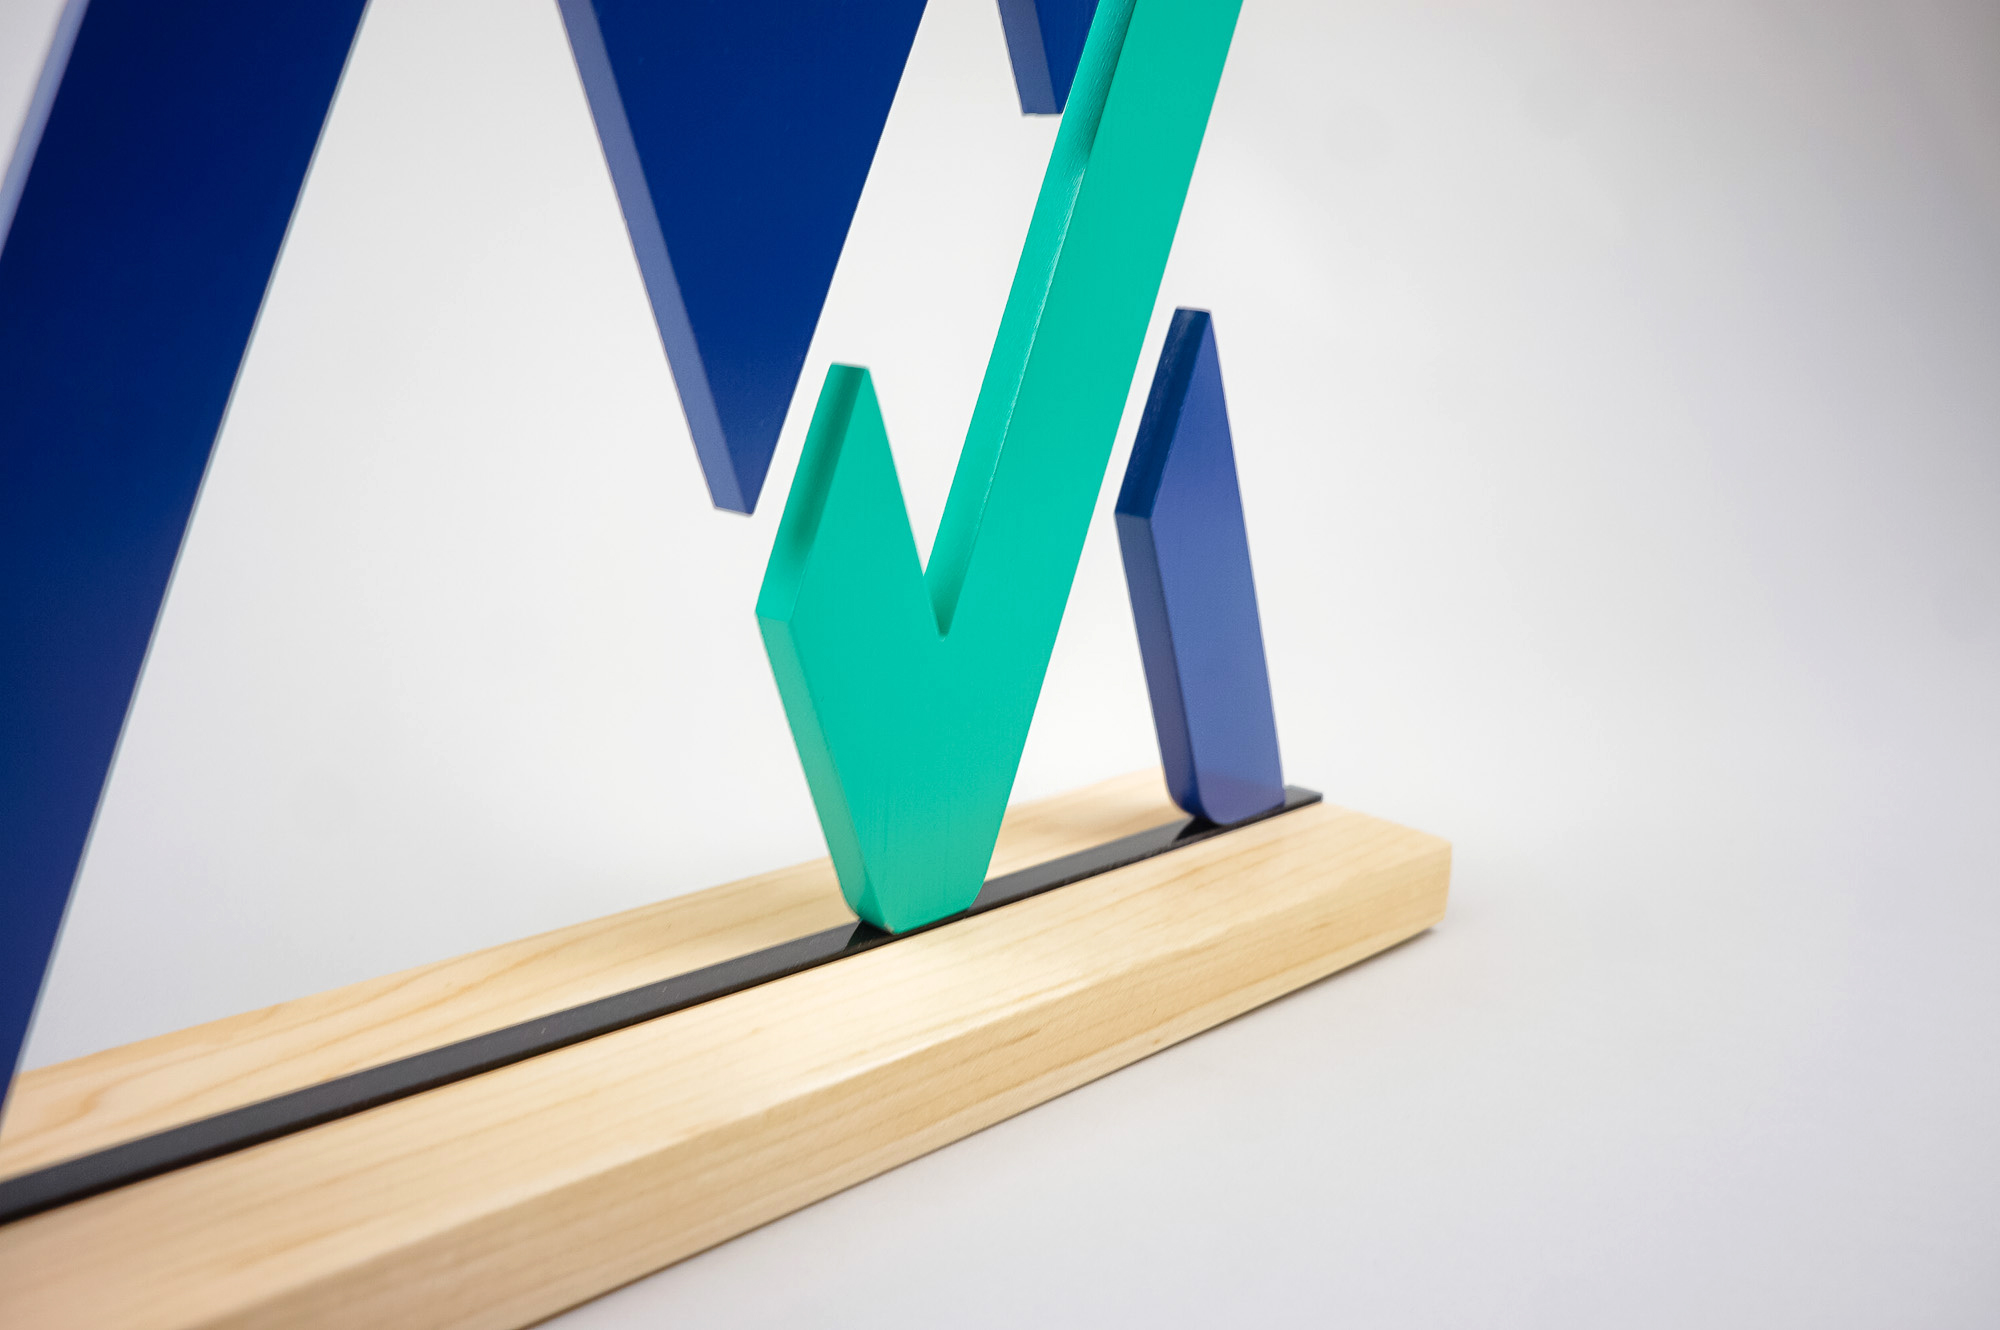 Freestanding blue and green logo on wood base for the office of MyVest, a company building enterprise wealth management technology for the digital age.